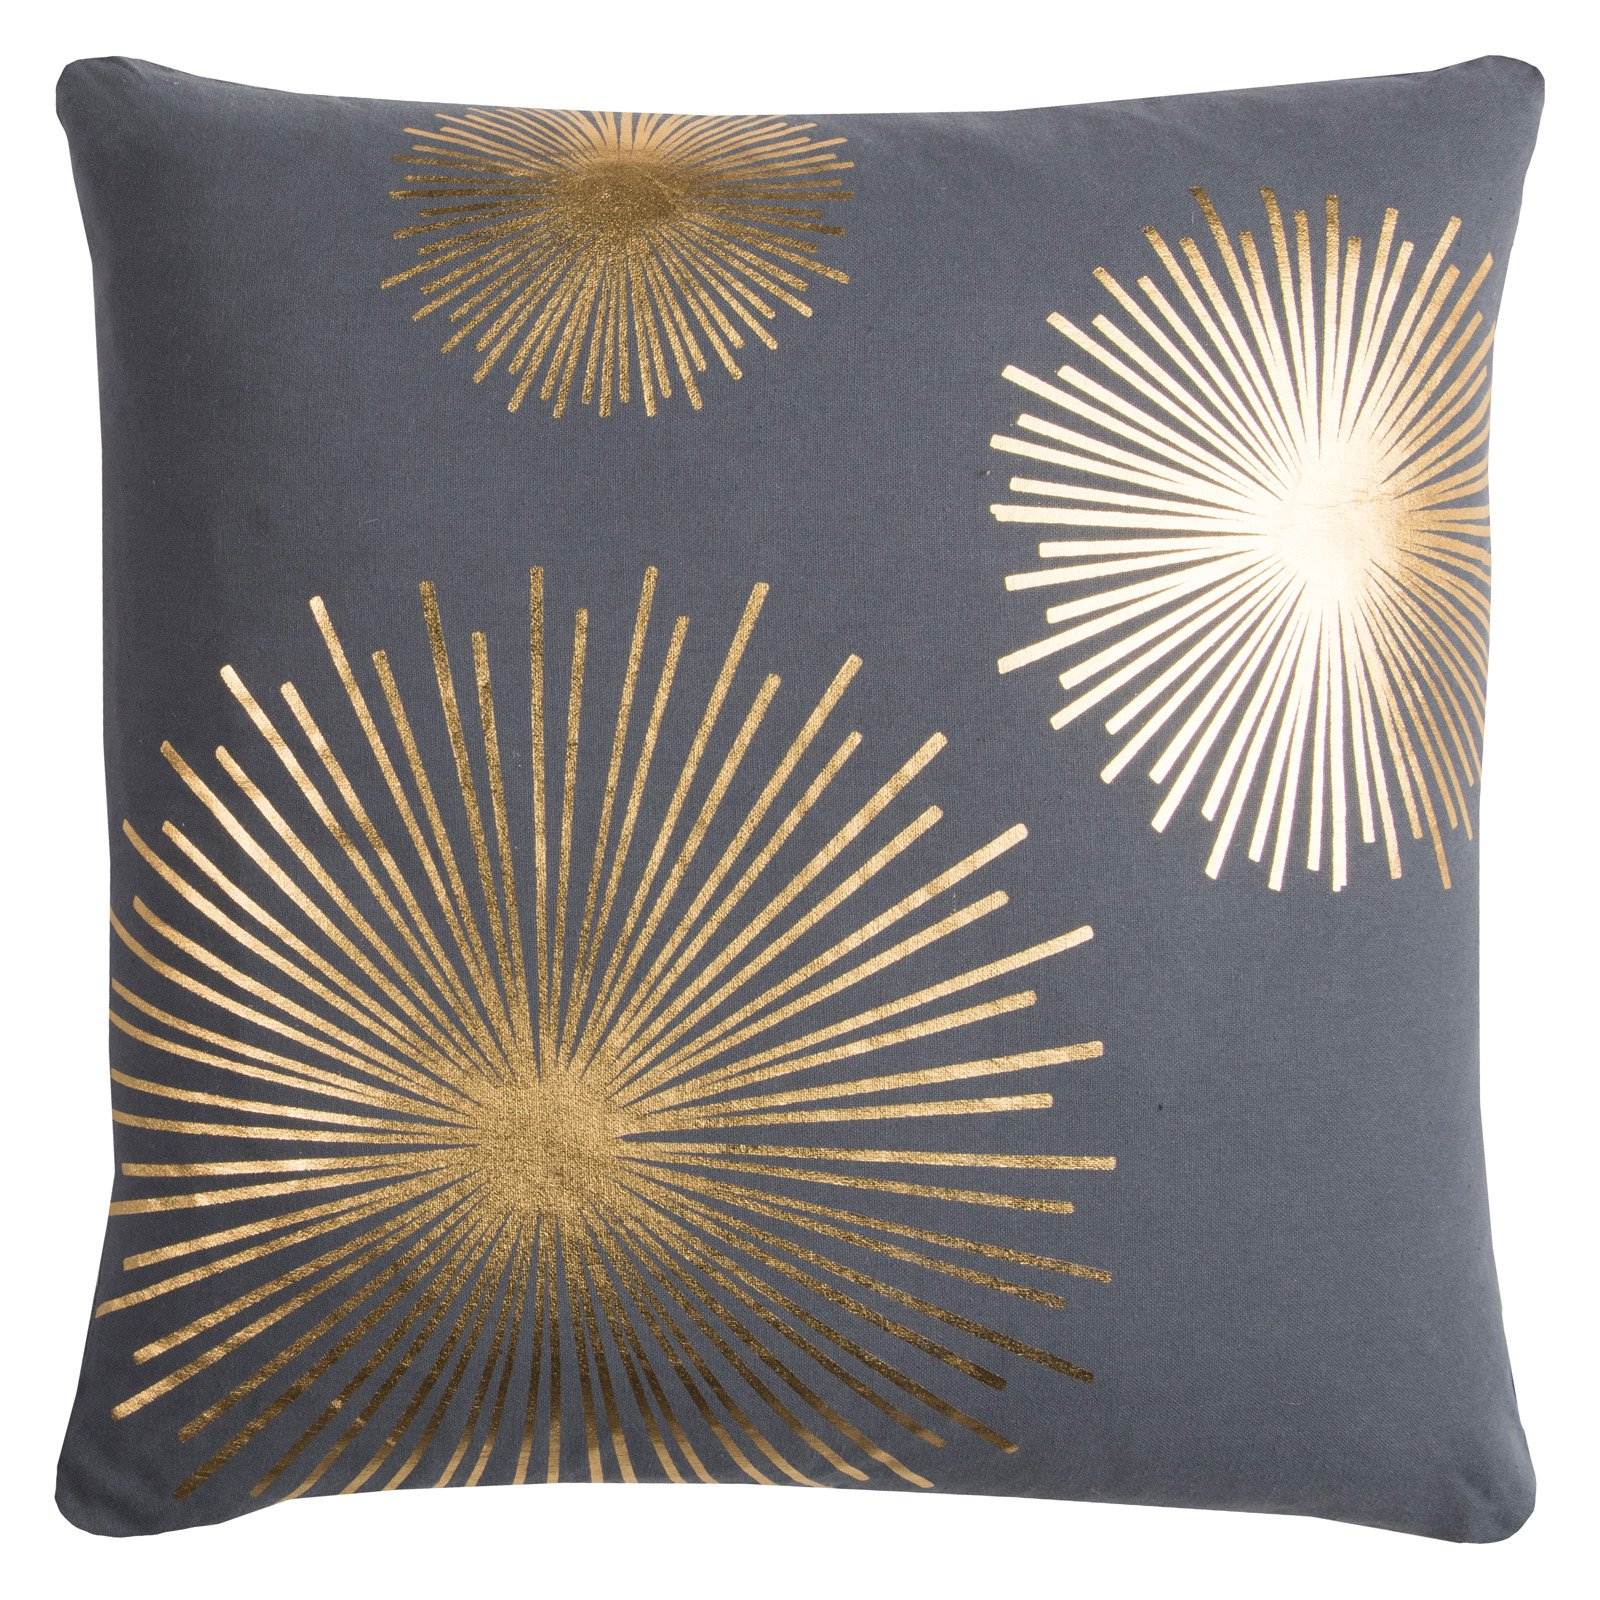 "Rachel Kate by Rizzy Home Star Burst Cotton Decorative Throw Pillow, 20"" x 20"", Grey/Gold"